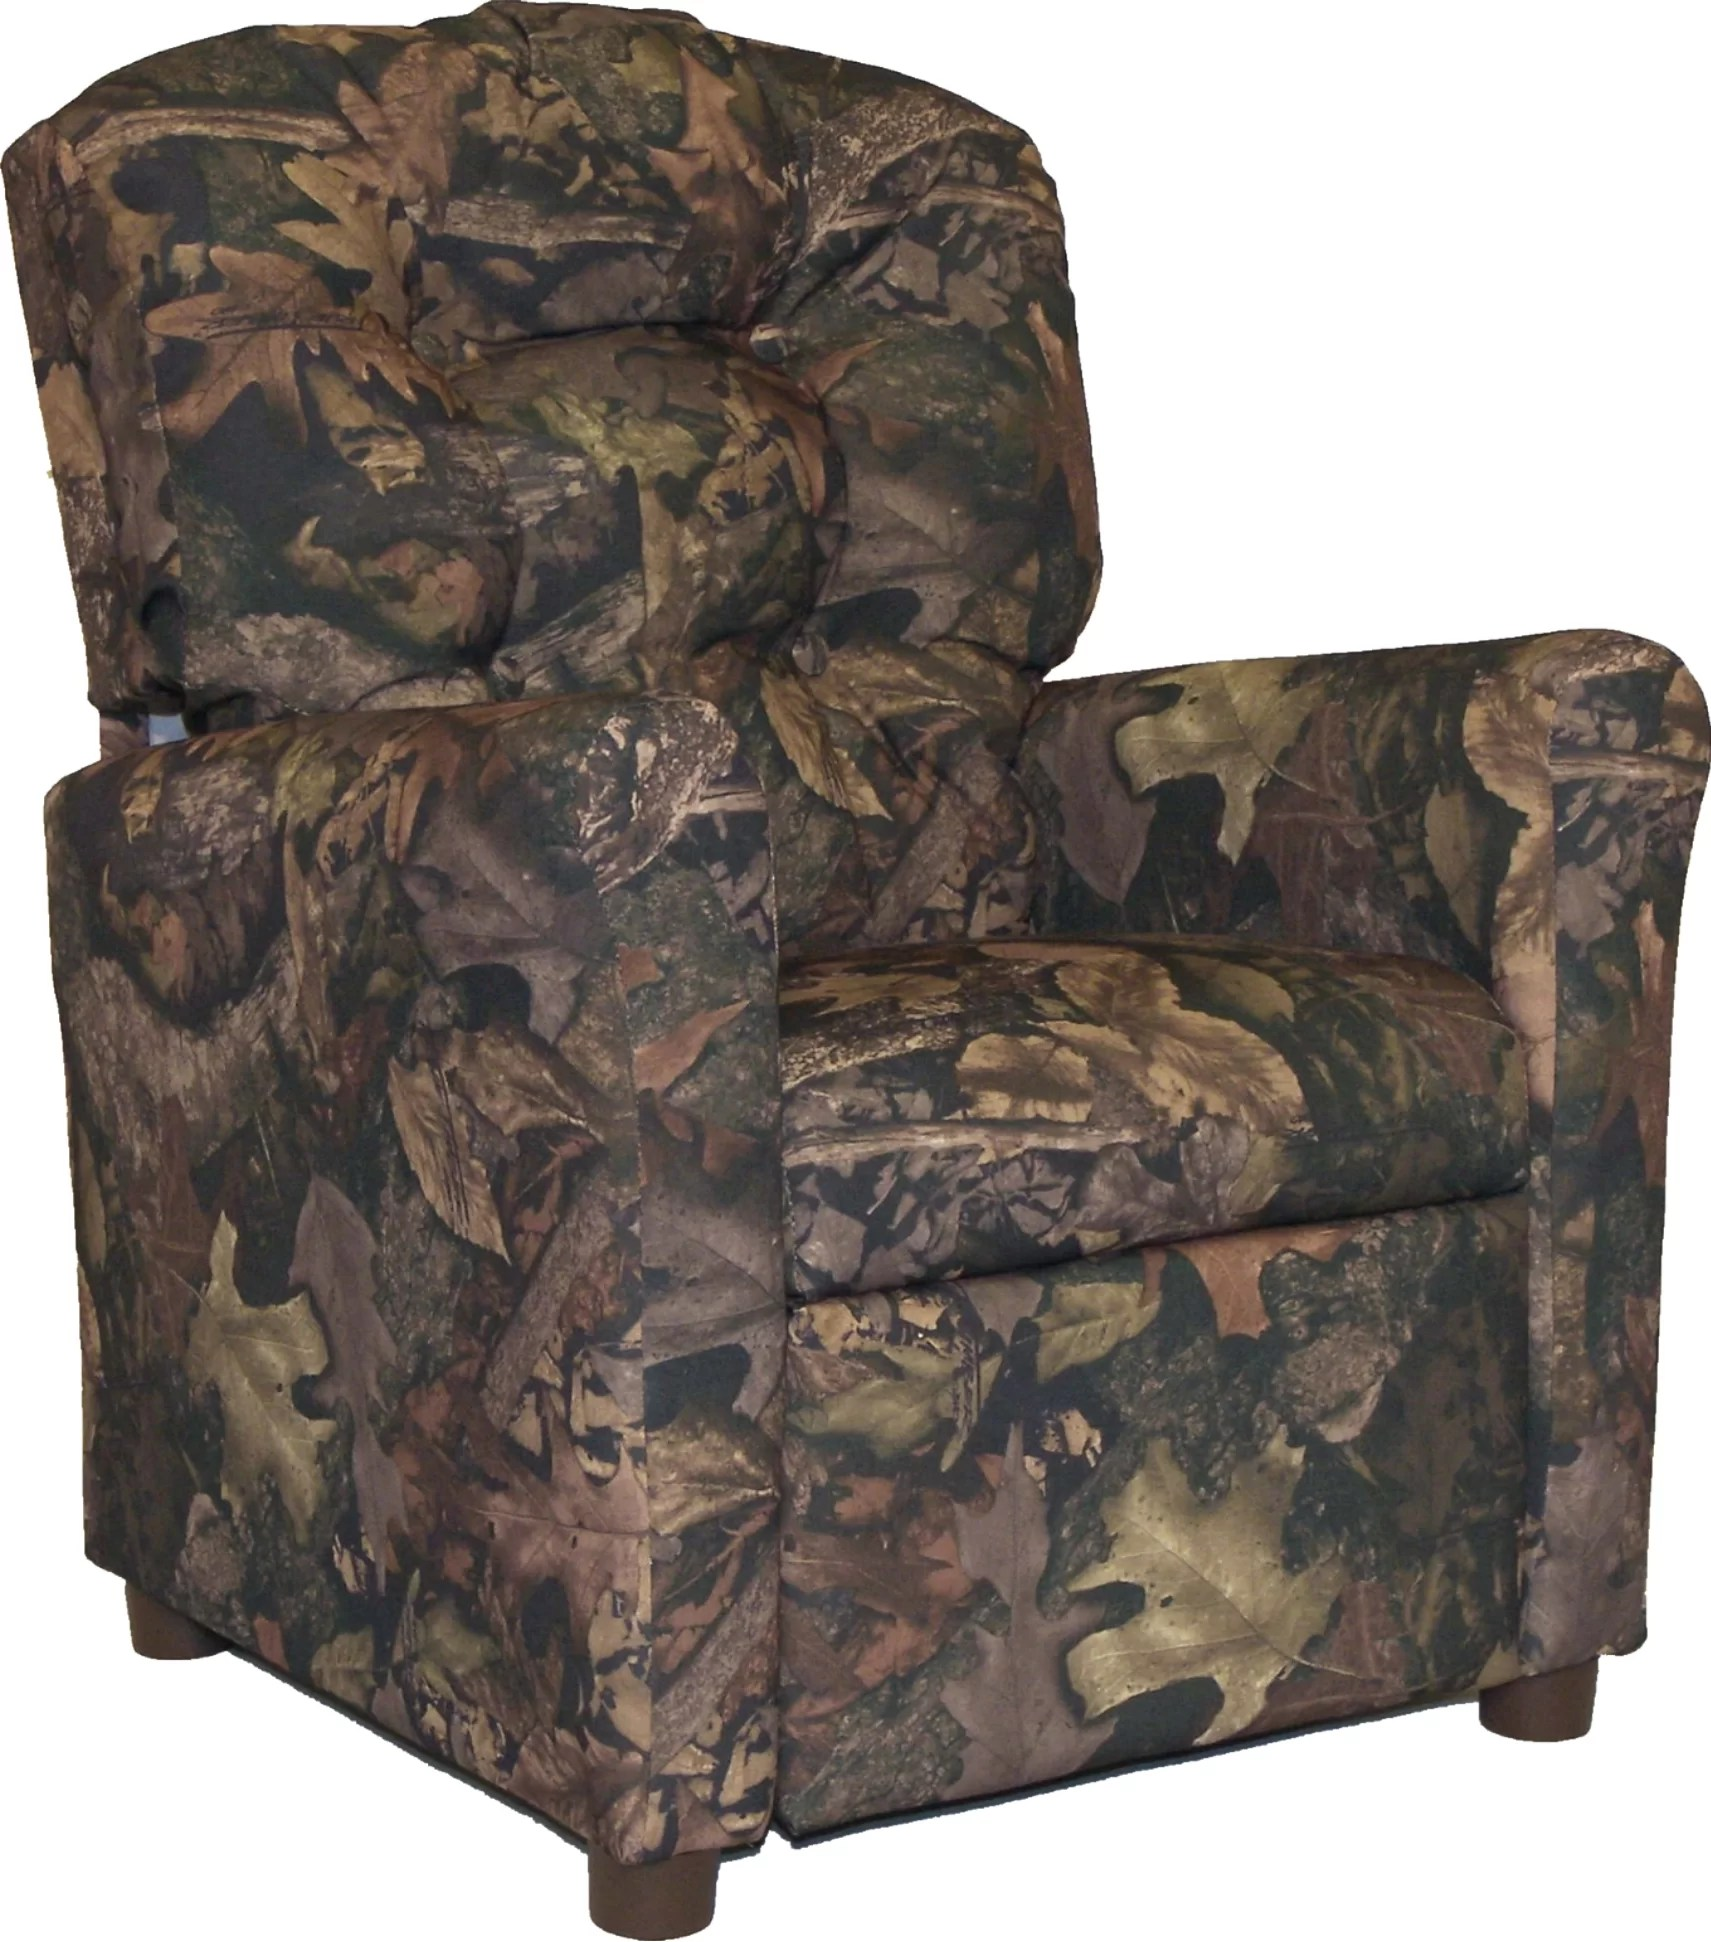 Camo Recliner Chair Brazil Furniture Harvest Camo Kids Recliner Ebay